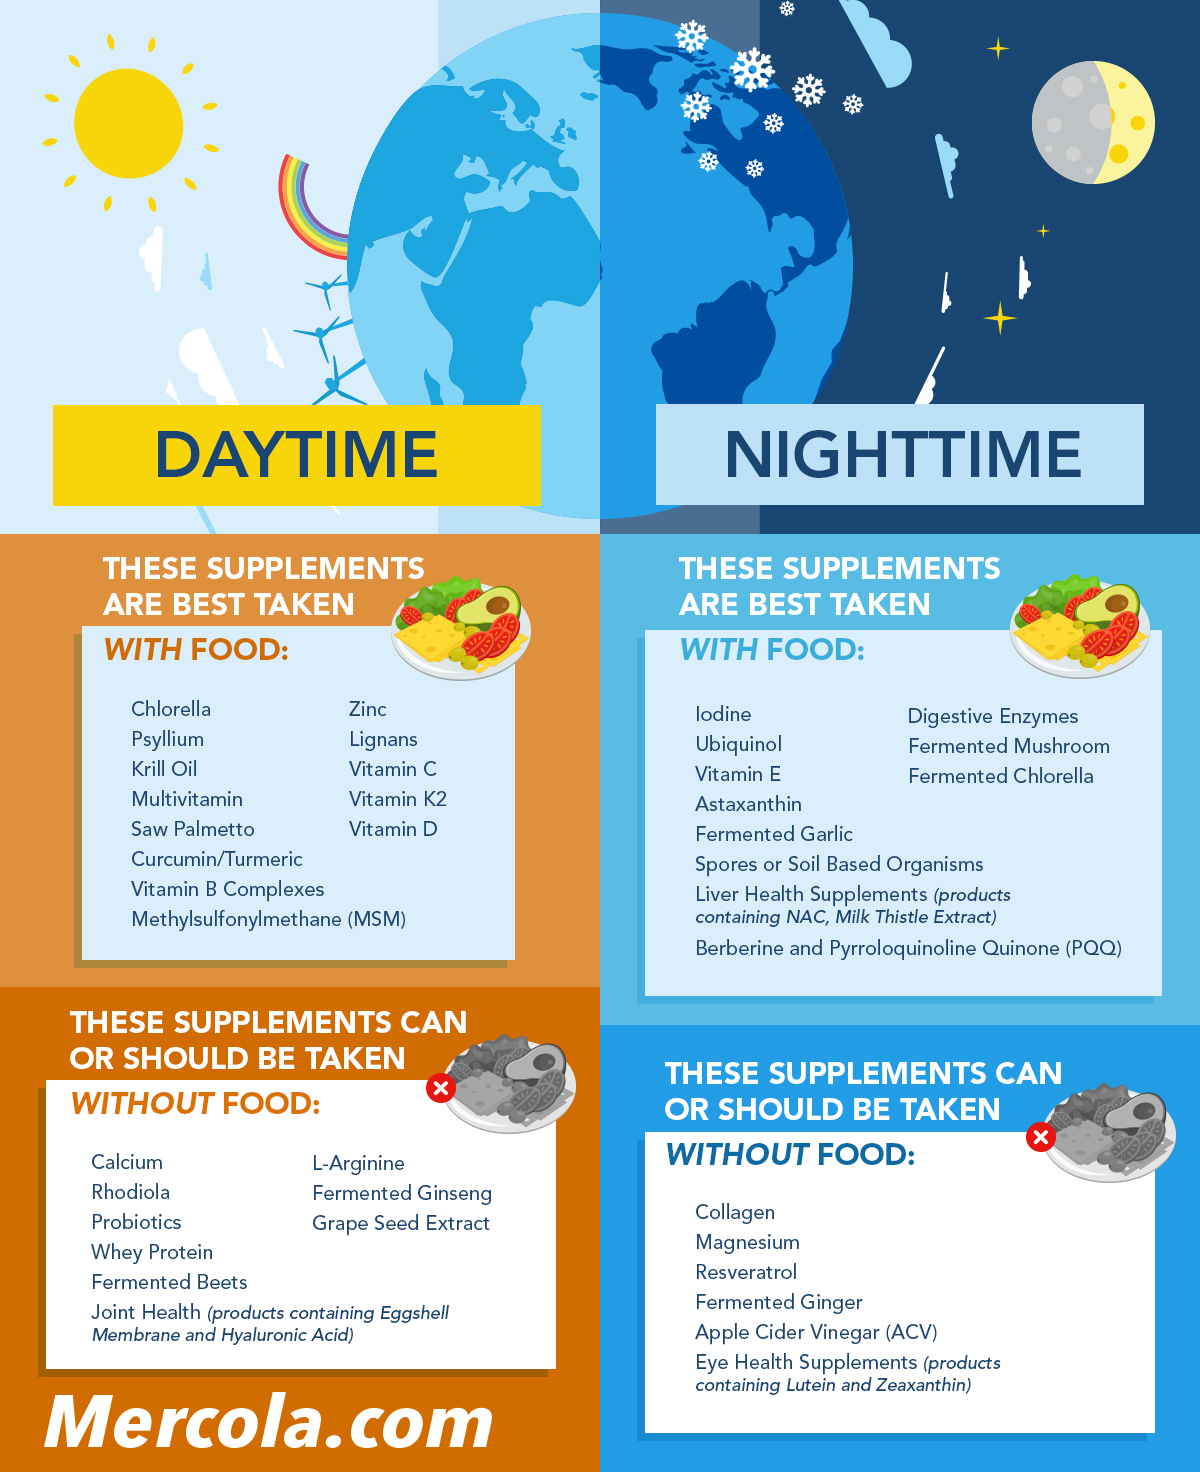 Quick Guide To The Timing Of Supplements